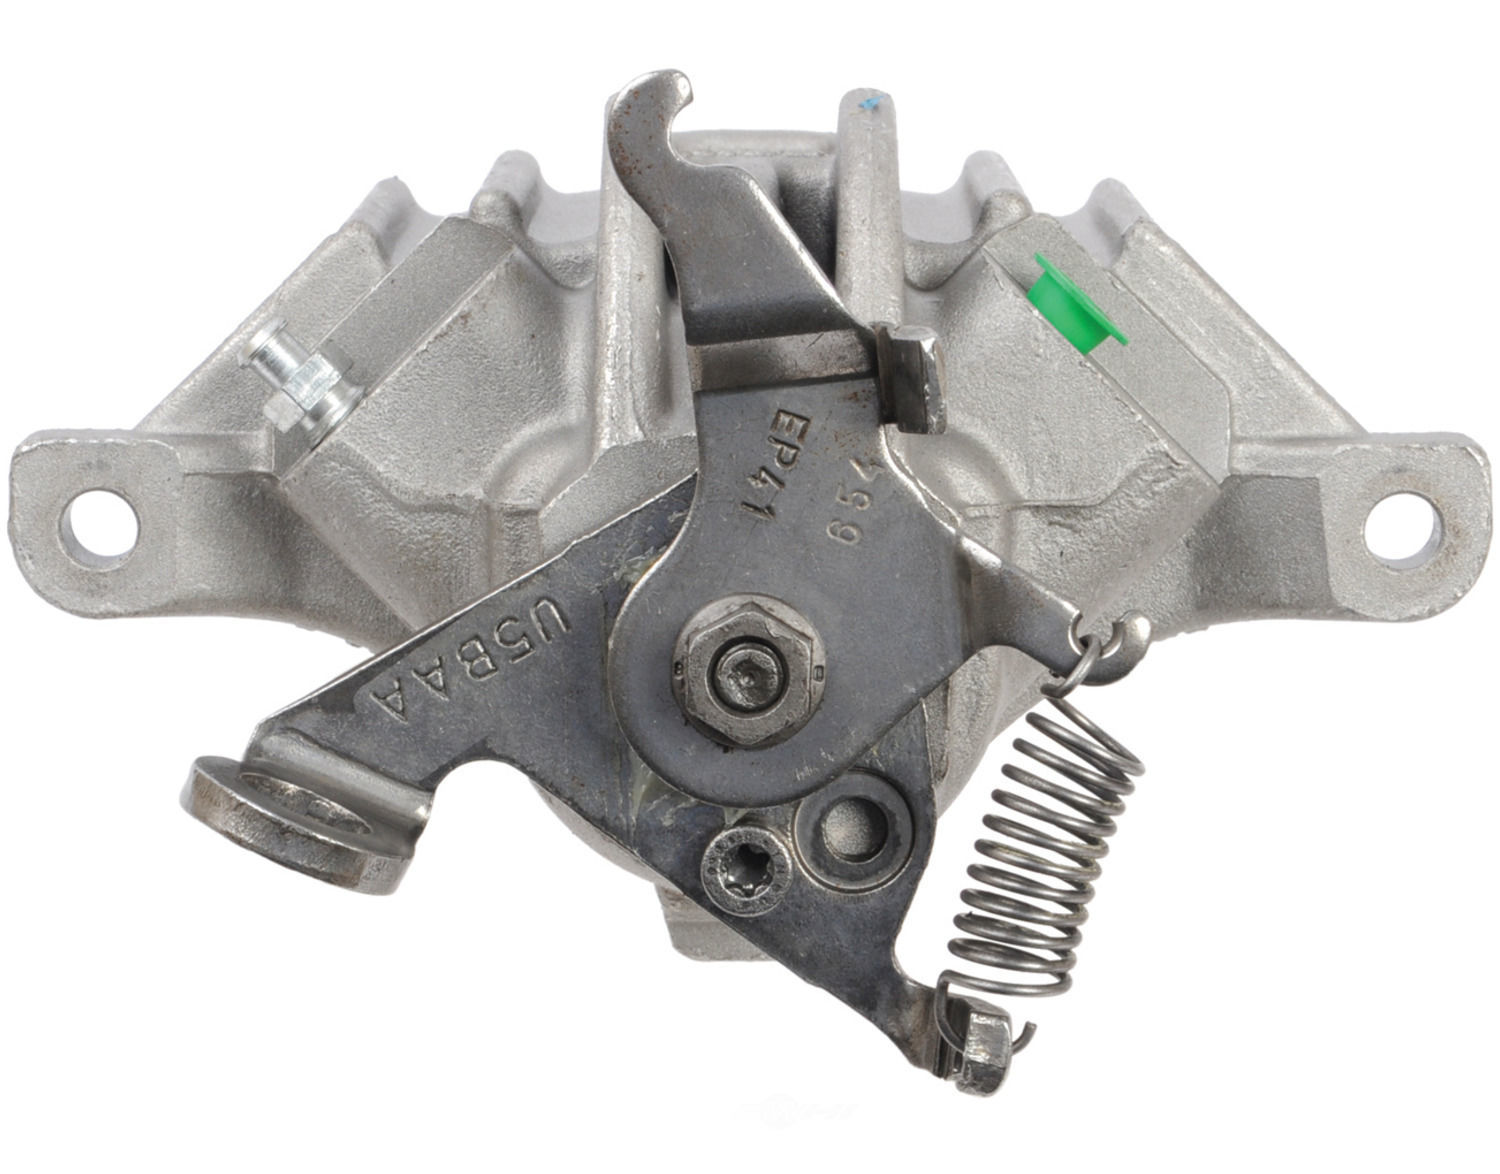 CARDONE/A-1 CARDONE - Reman. A-1 CARDONE Friction Choice Caliper (Rear Left) - A1C 19-3516